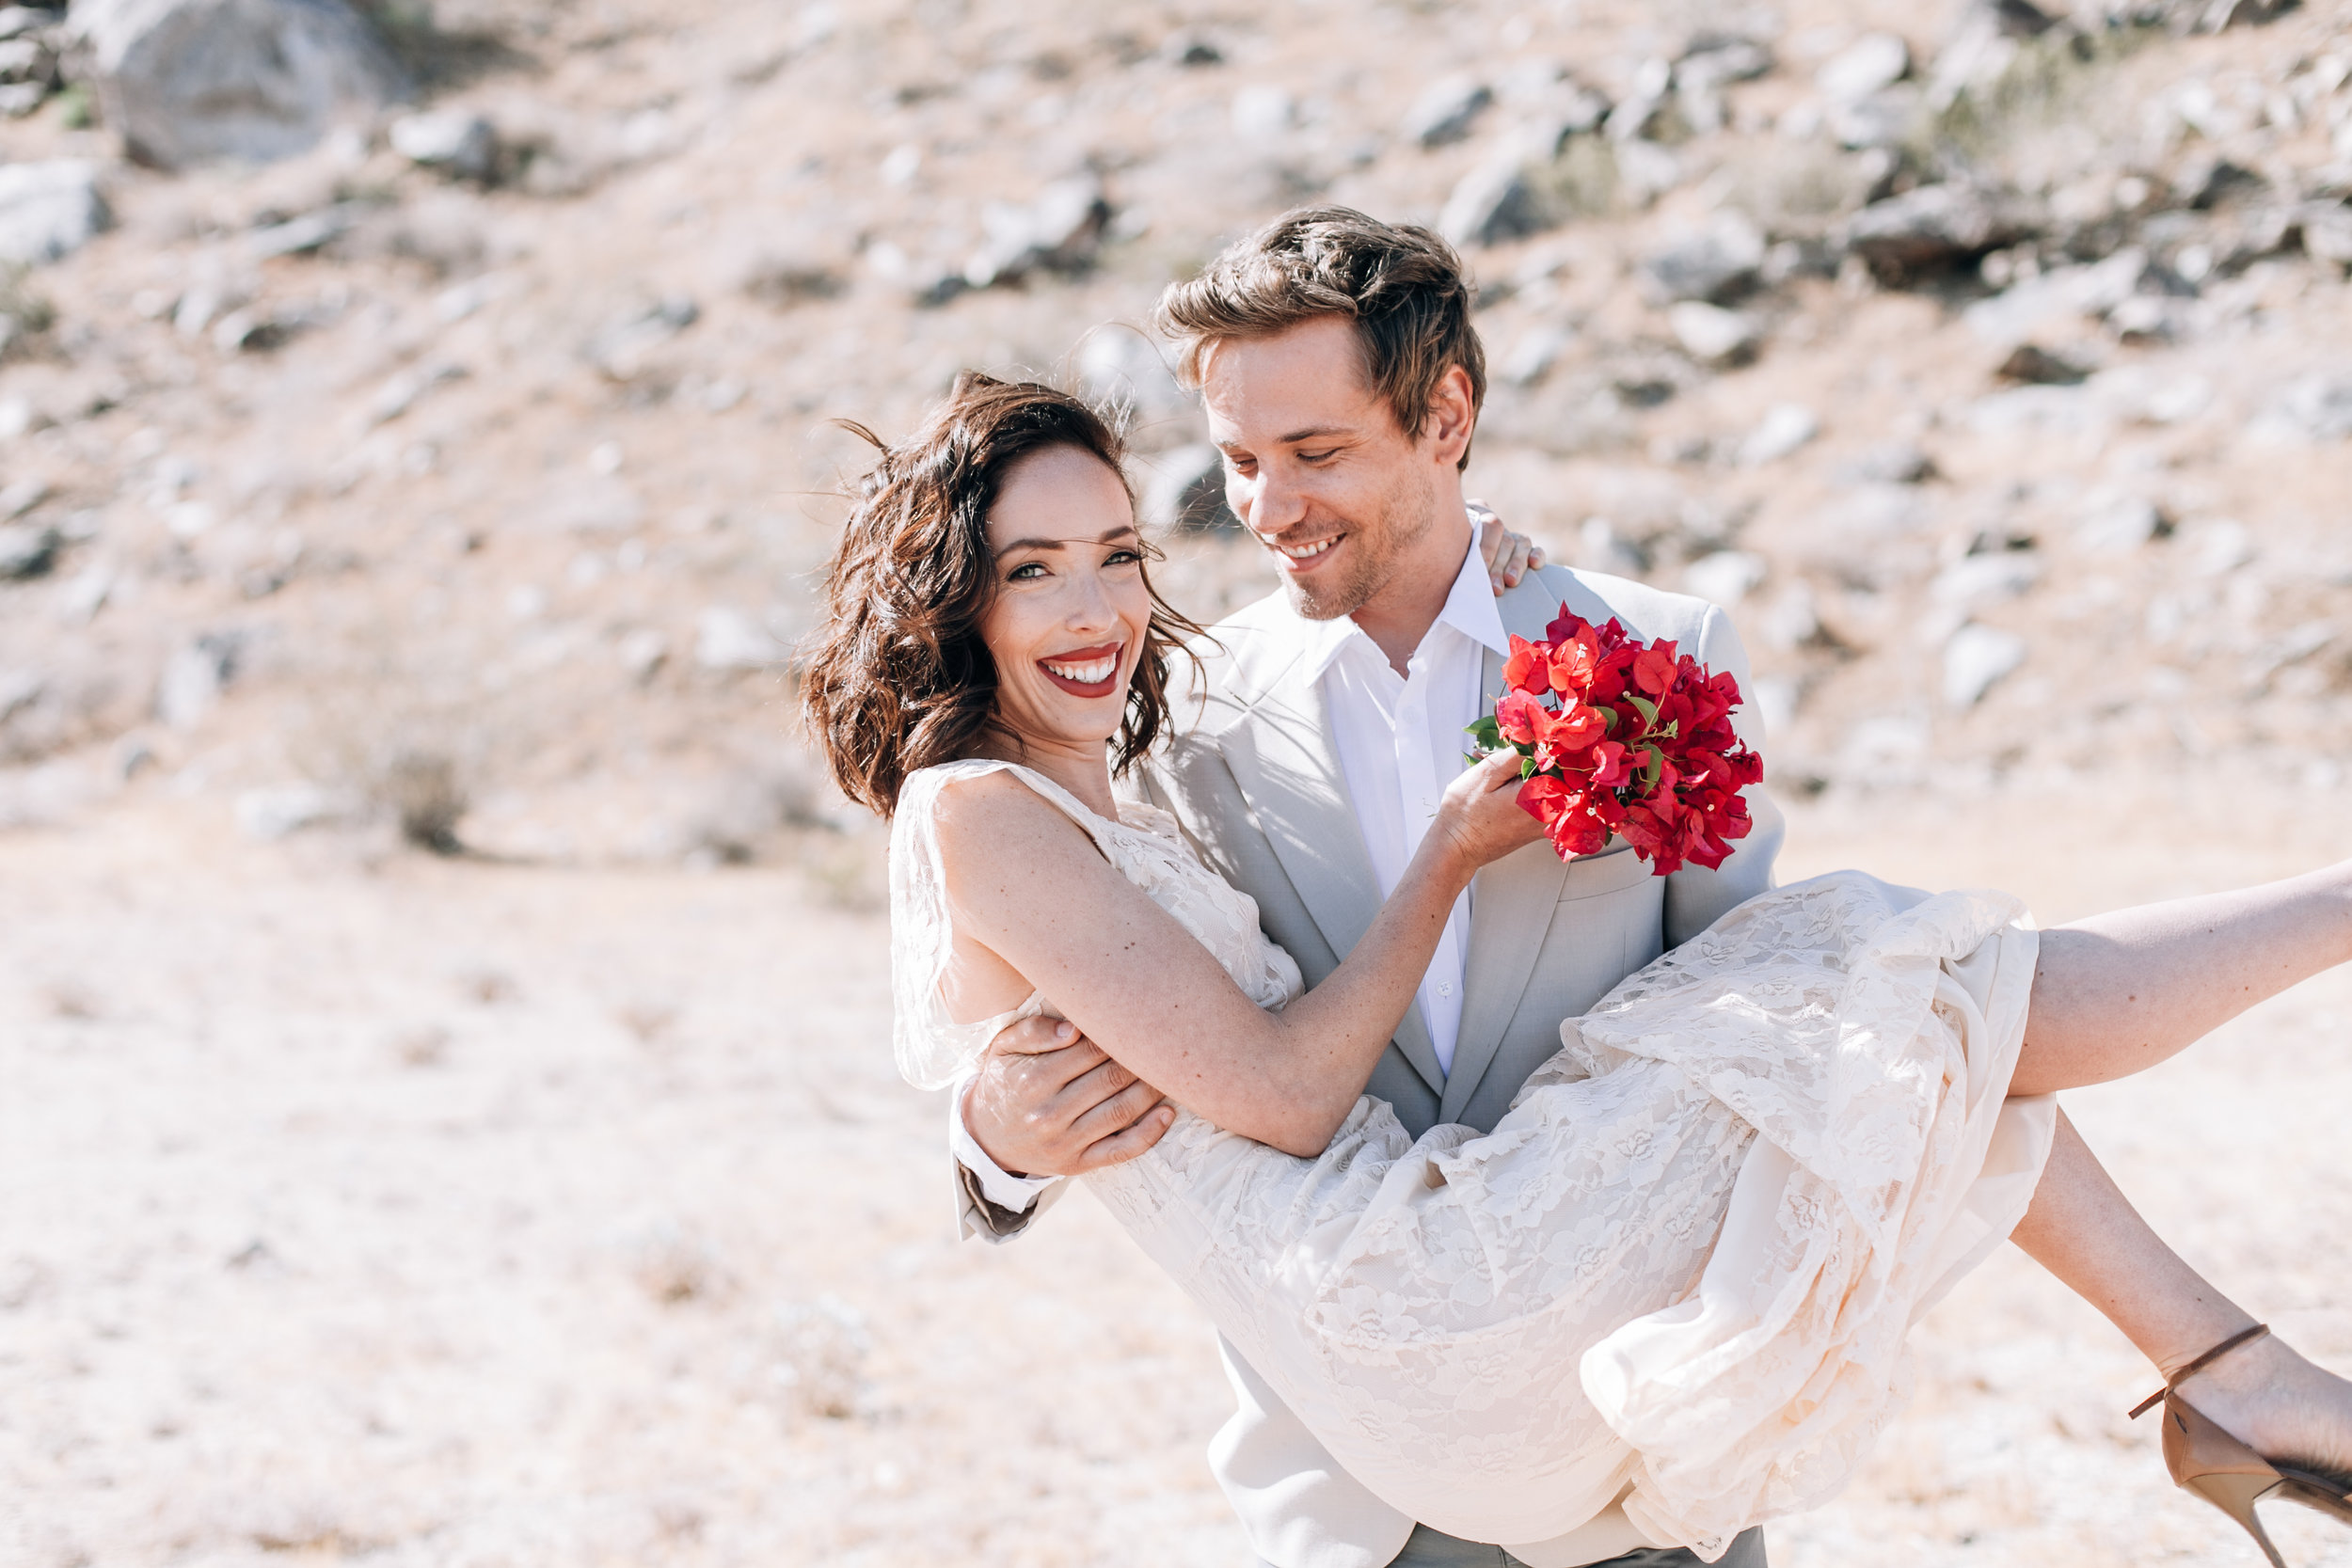 KaraNixonWeddings-PalmSprings-Elopement-1.jpg